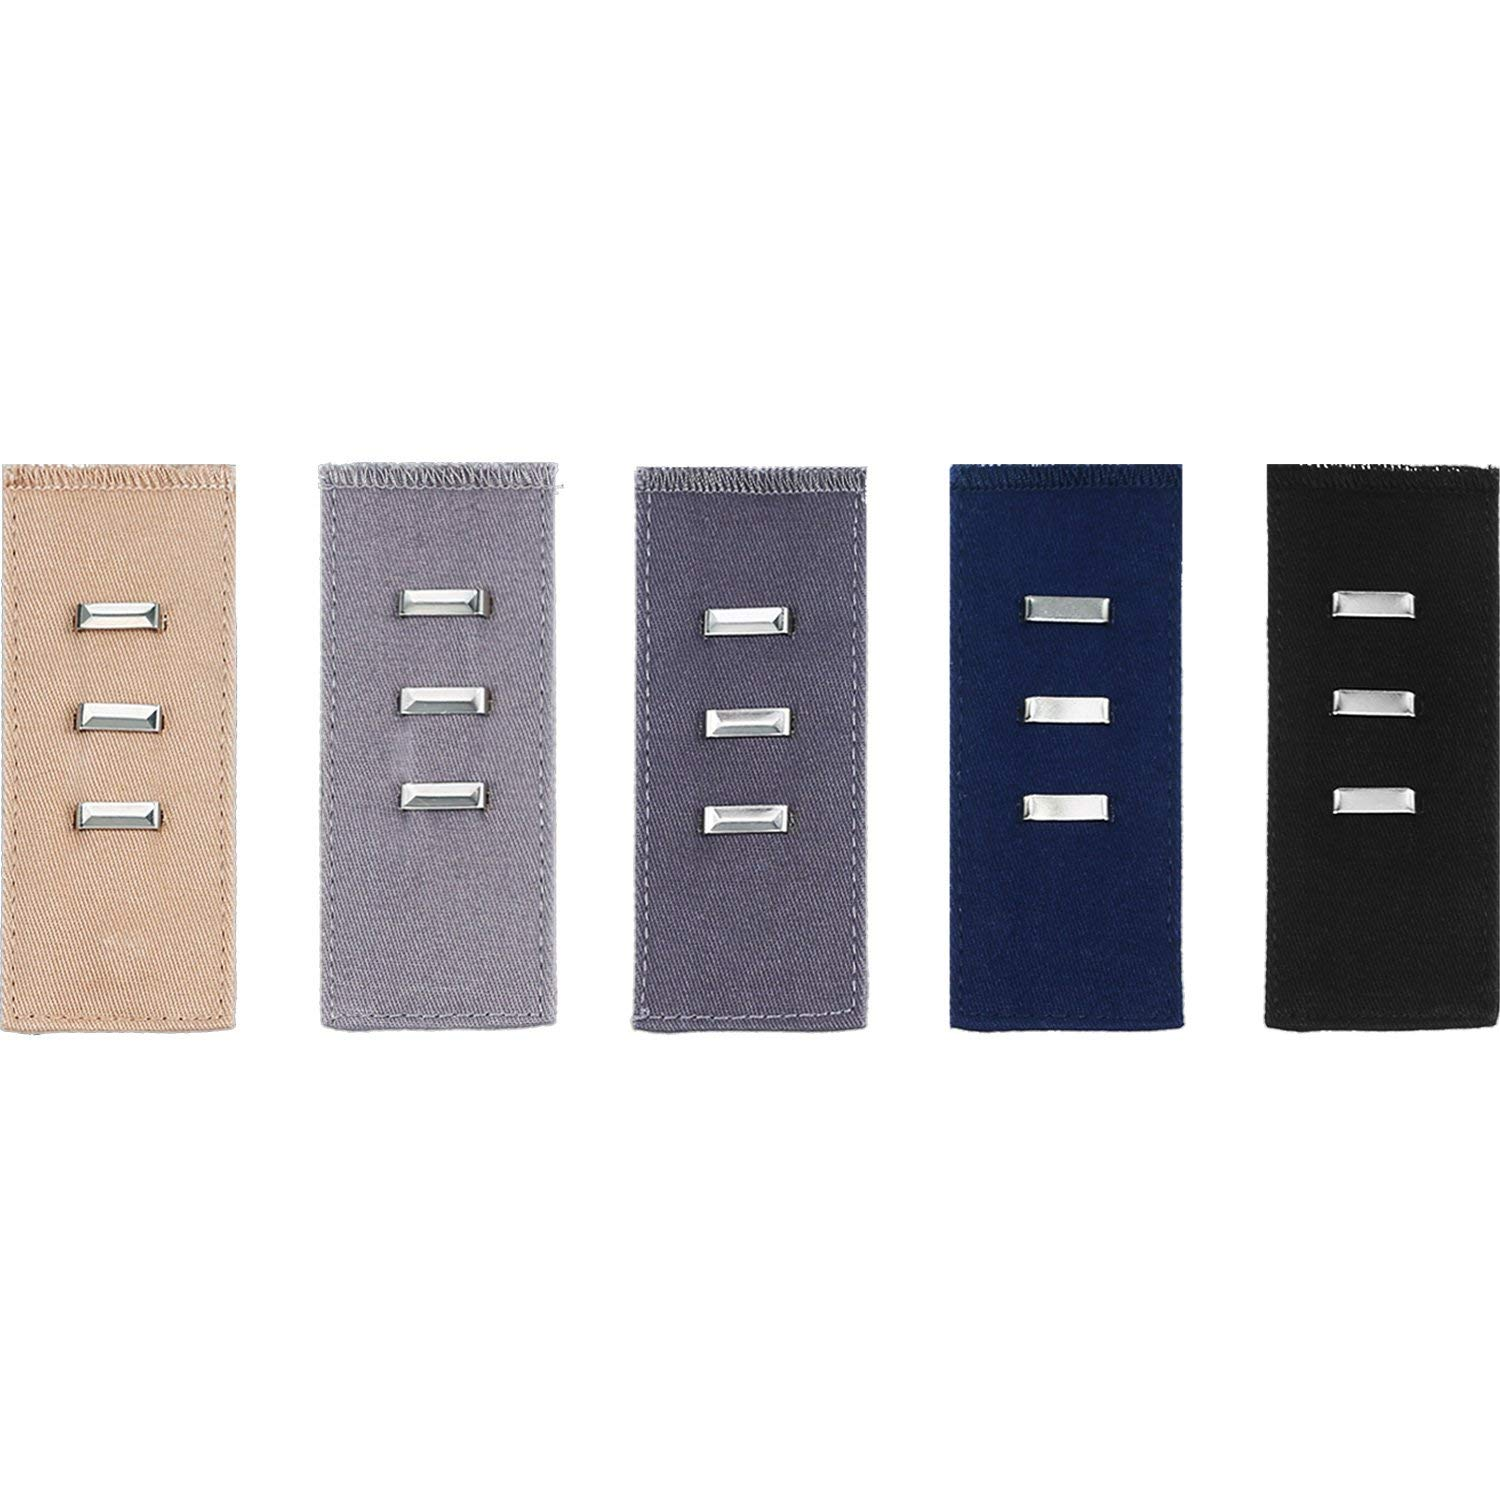 Mtlee 5 Pieces Pants Waist Extender with Metal Hook Waist Band Extender Set for Pants, Jeans, Trousers and Skirt, 5 Colors